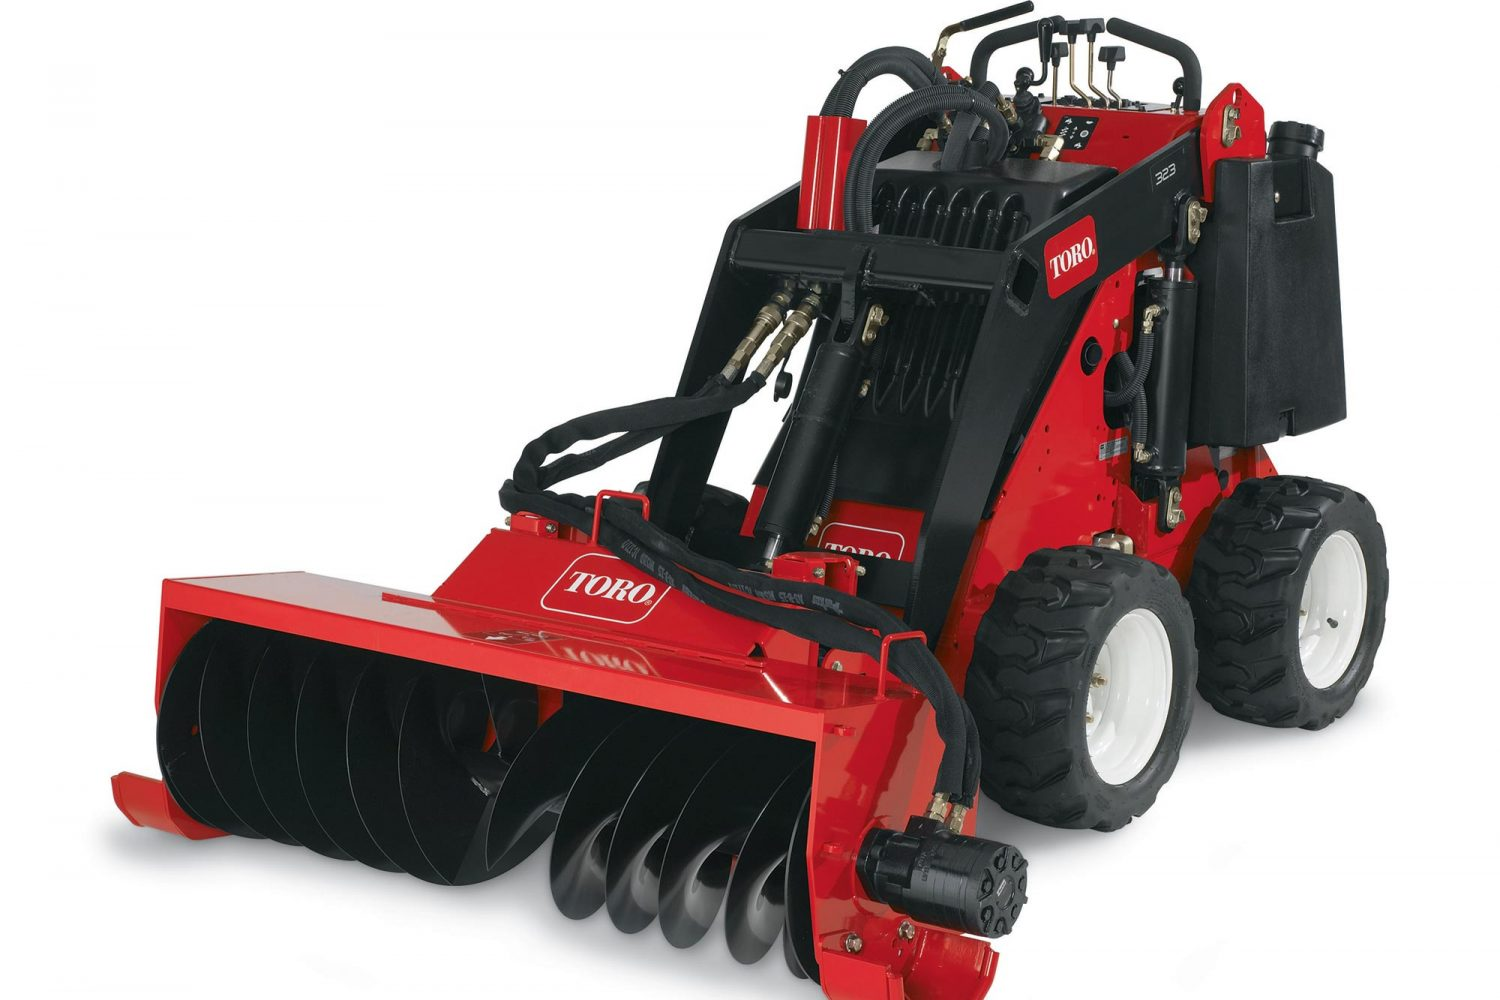 TORO W323 COMPACT UTILITY LOADER